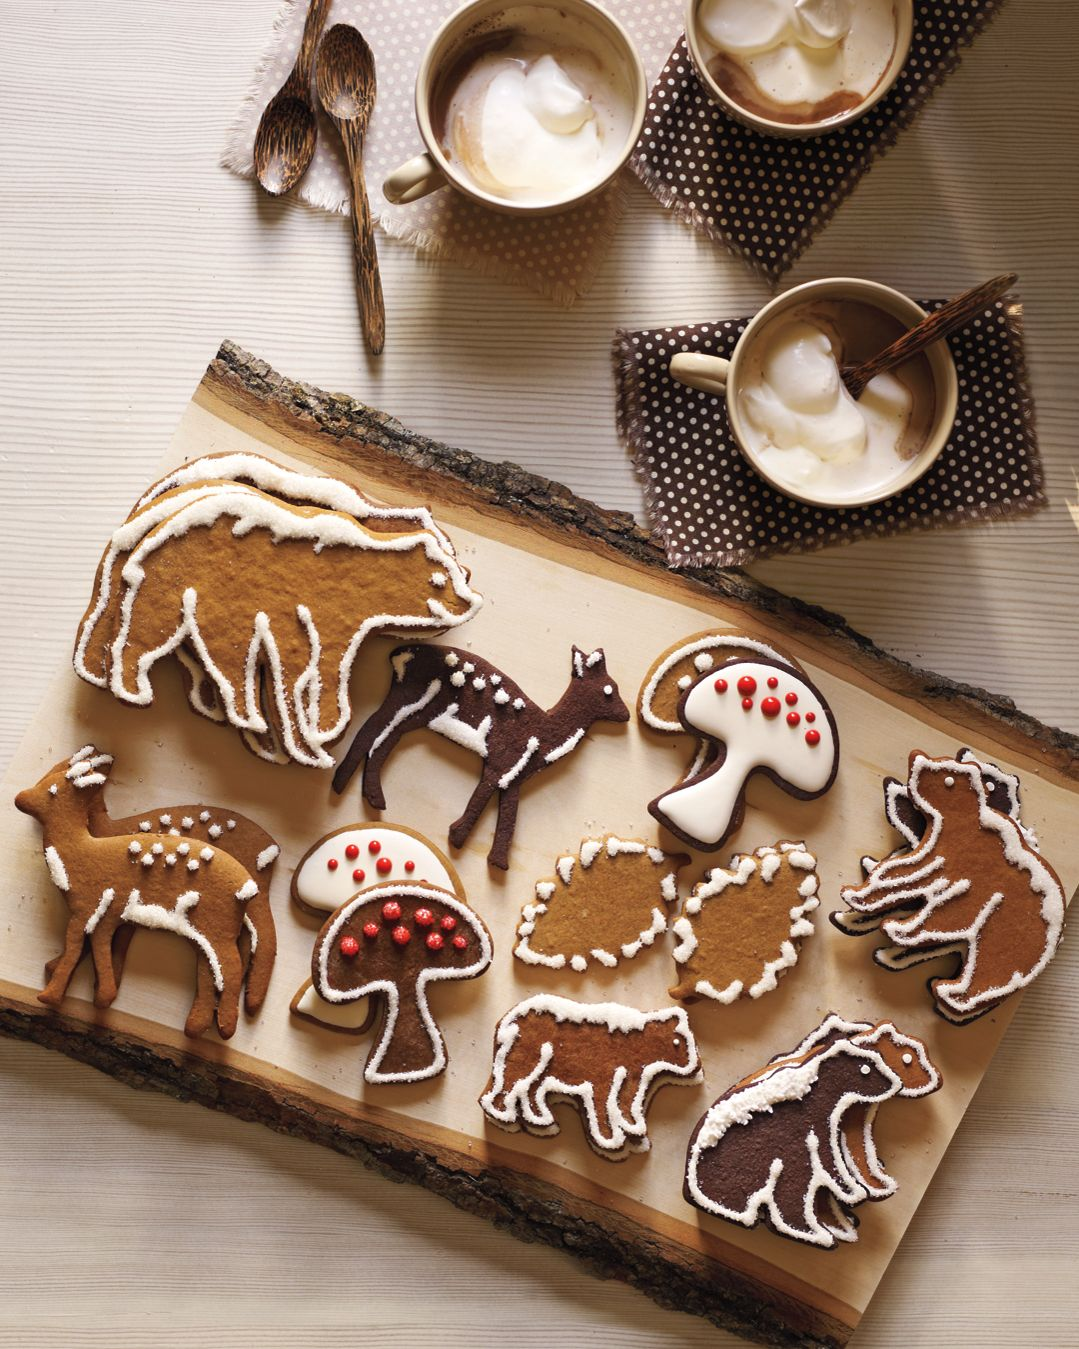 Traditional Christmas Cookie Recipes Perfect for the Holiday Season